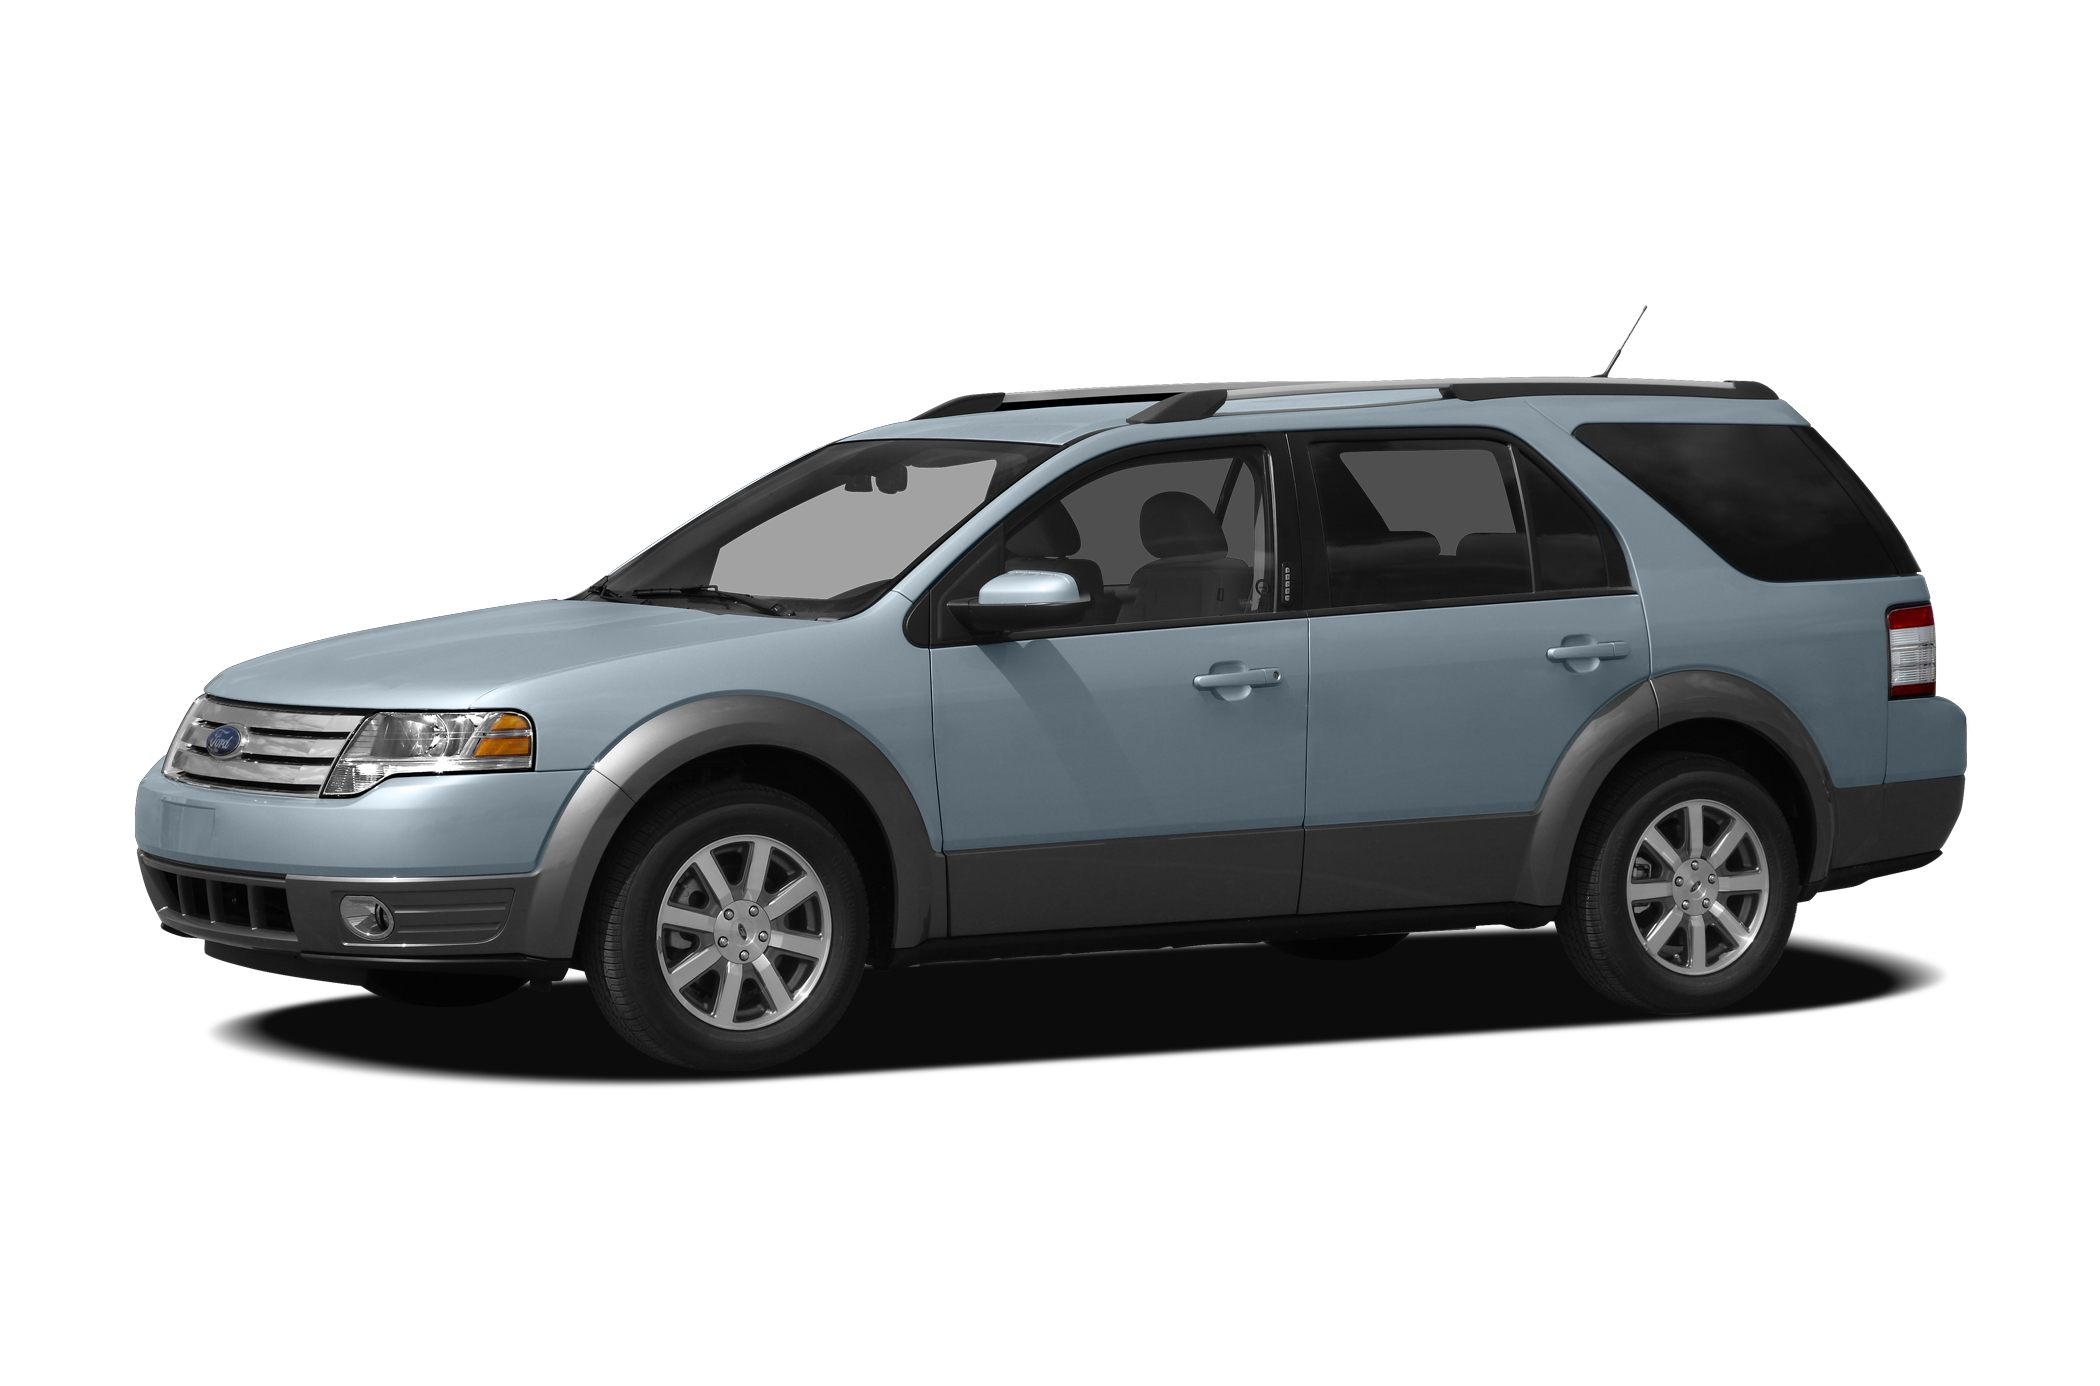 2009 Ford Taurus X SEL SUV for sale in Lufkin for $0 with 101,625 miles